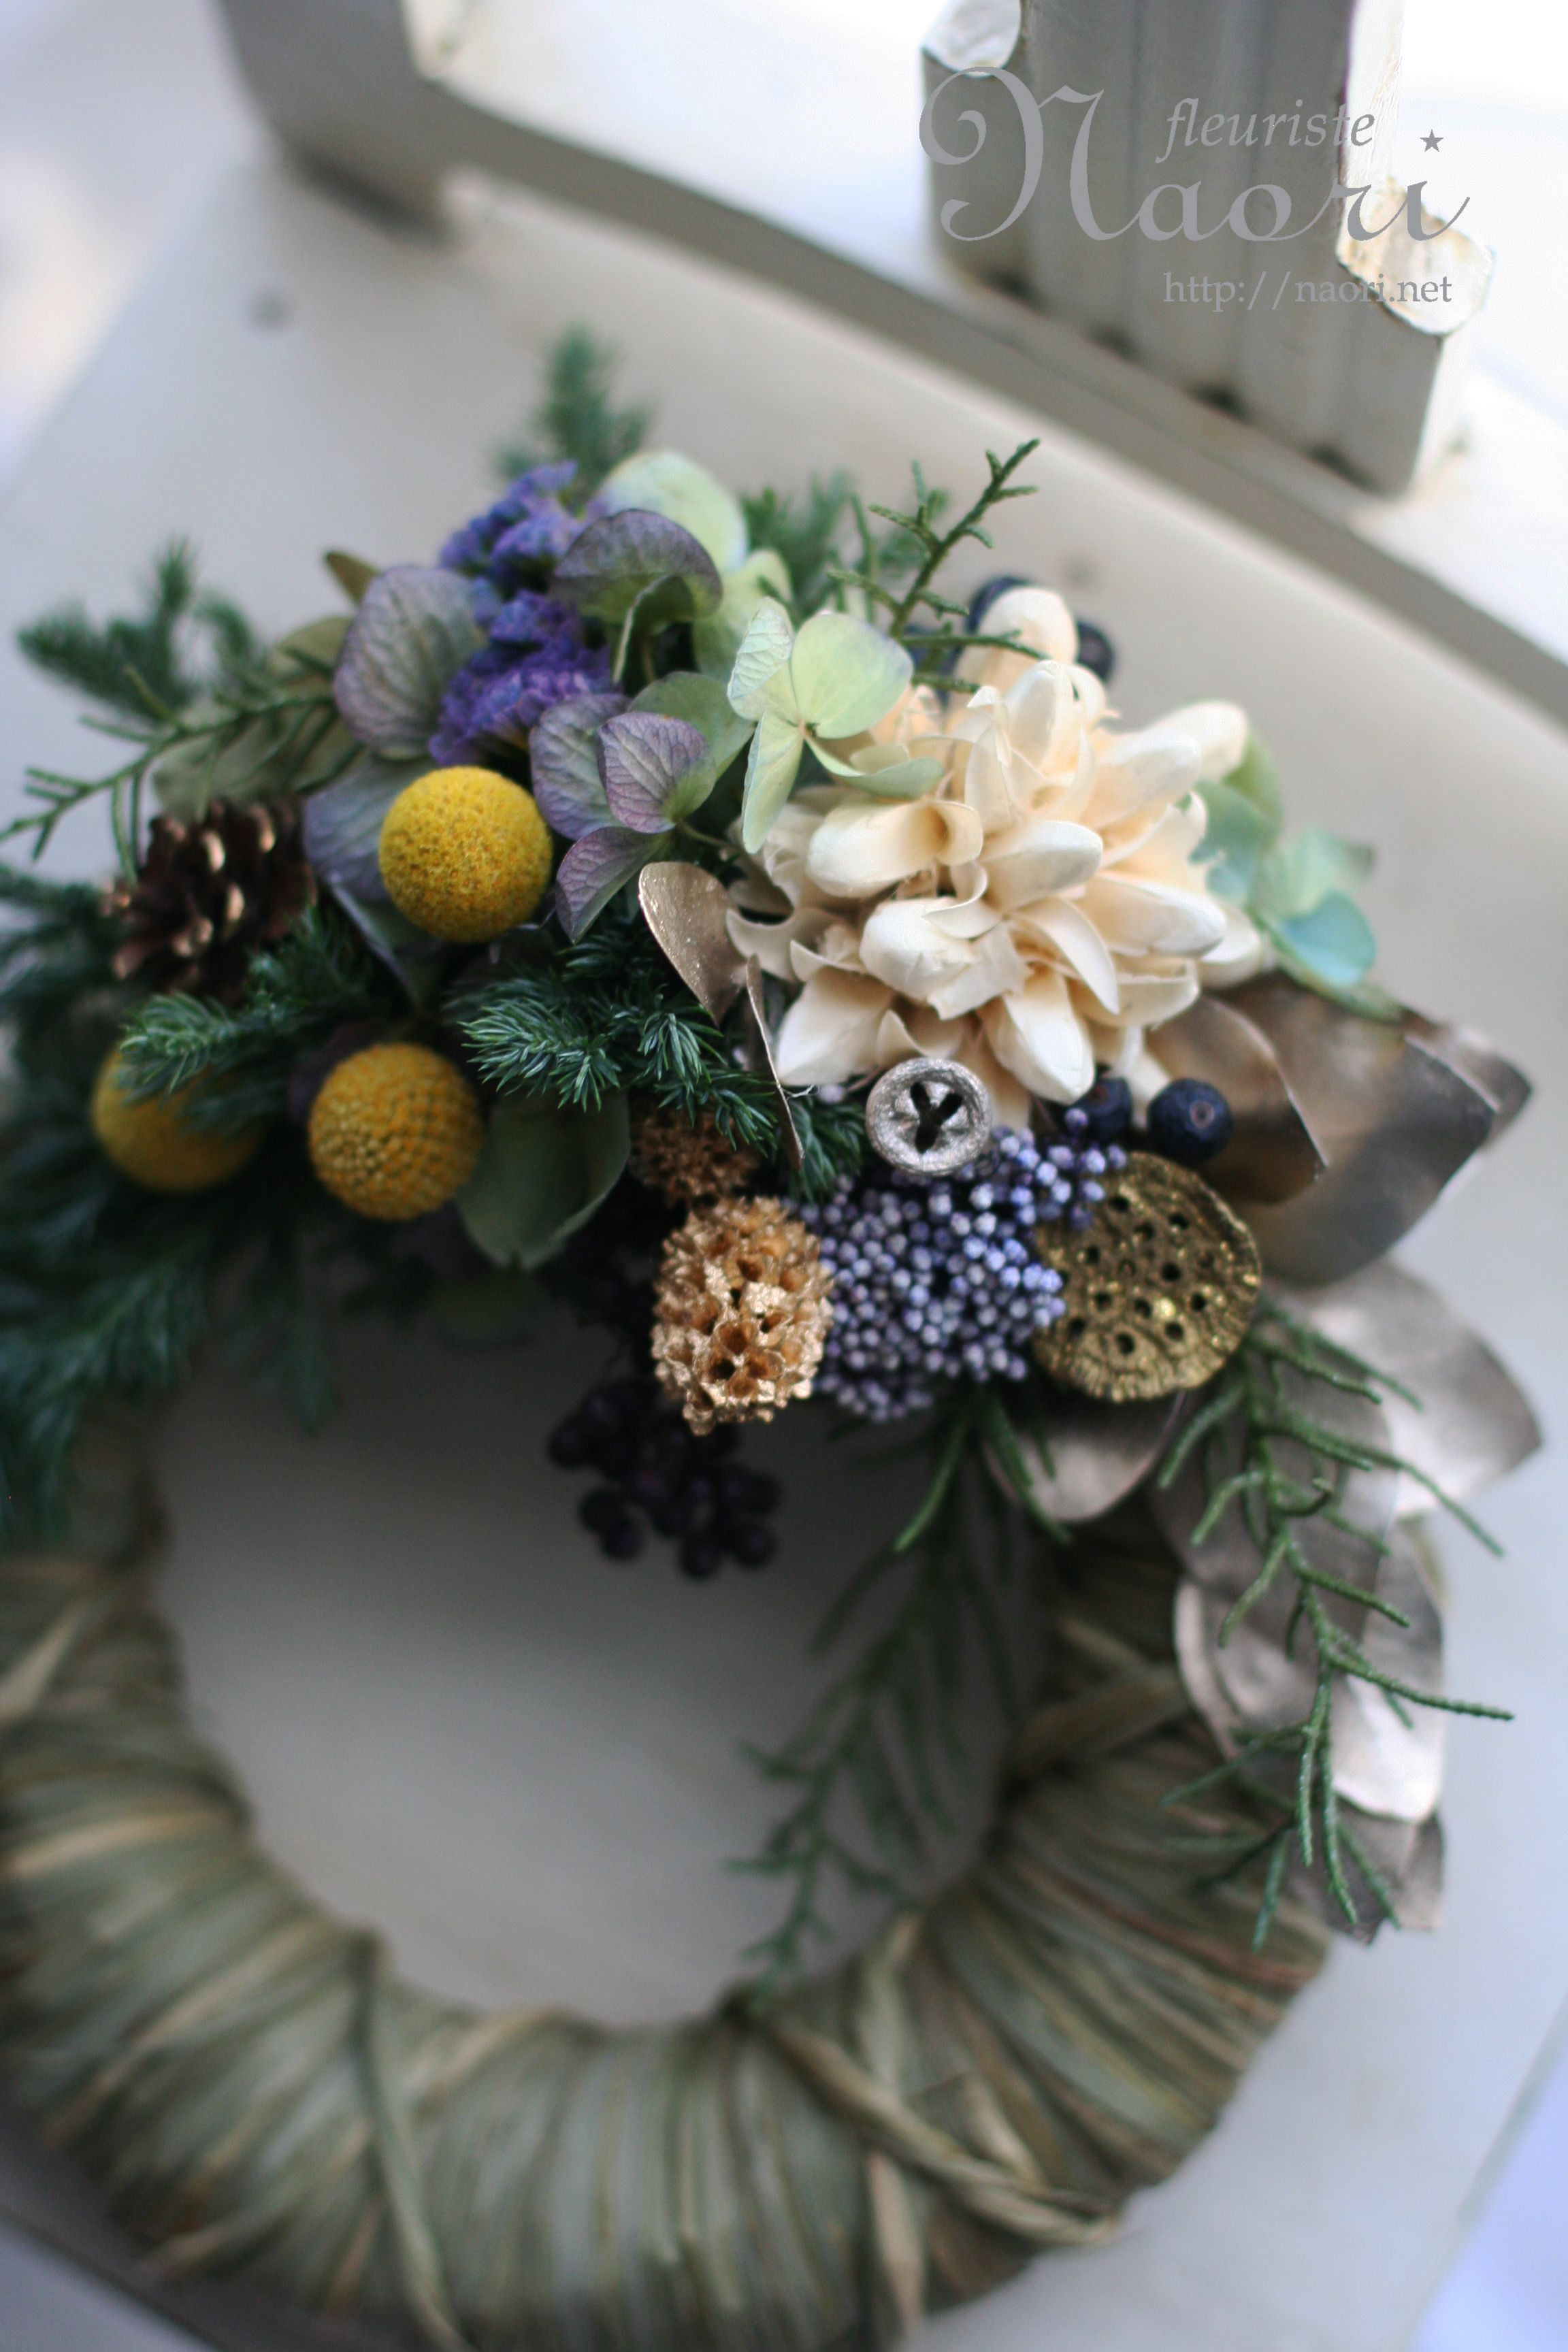 Japanese New Year wreath 2013 (With images) Winter